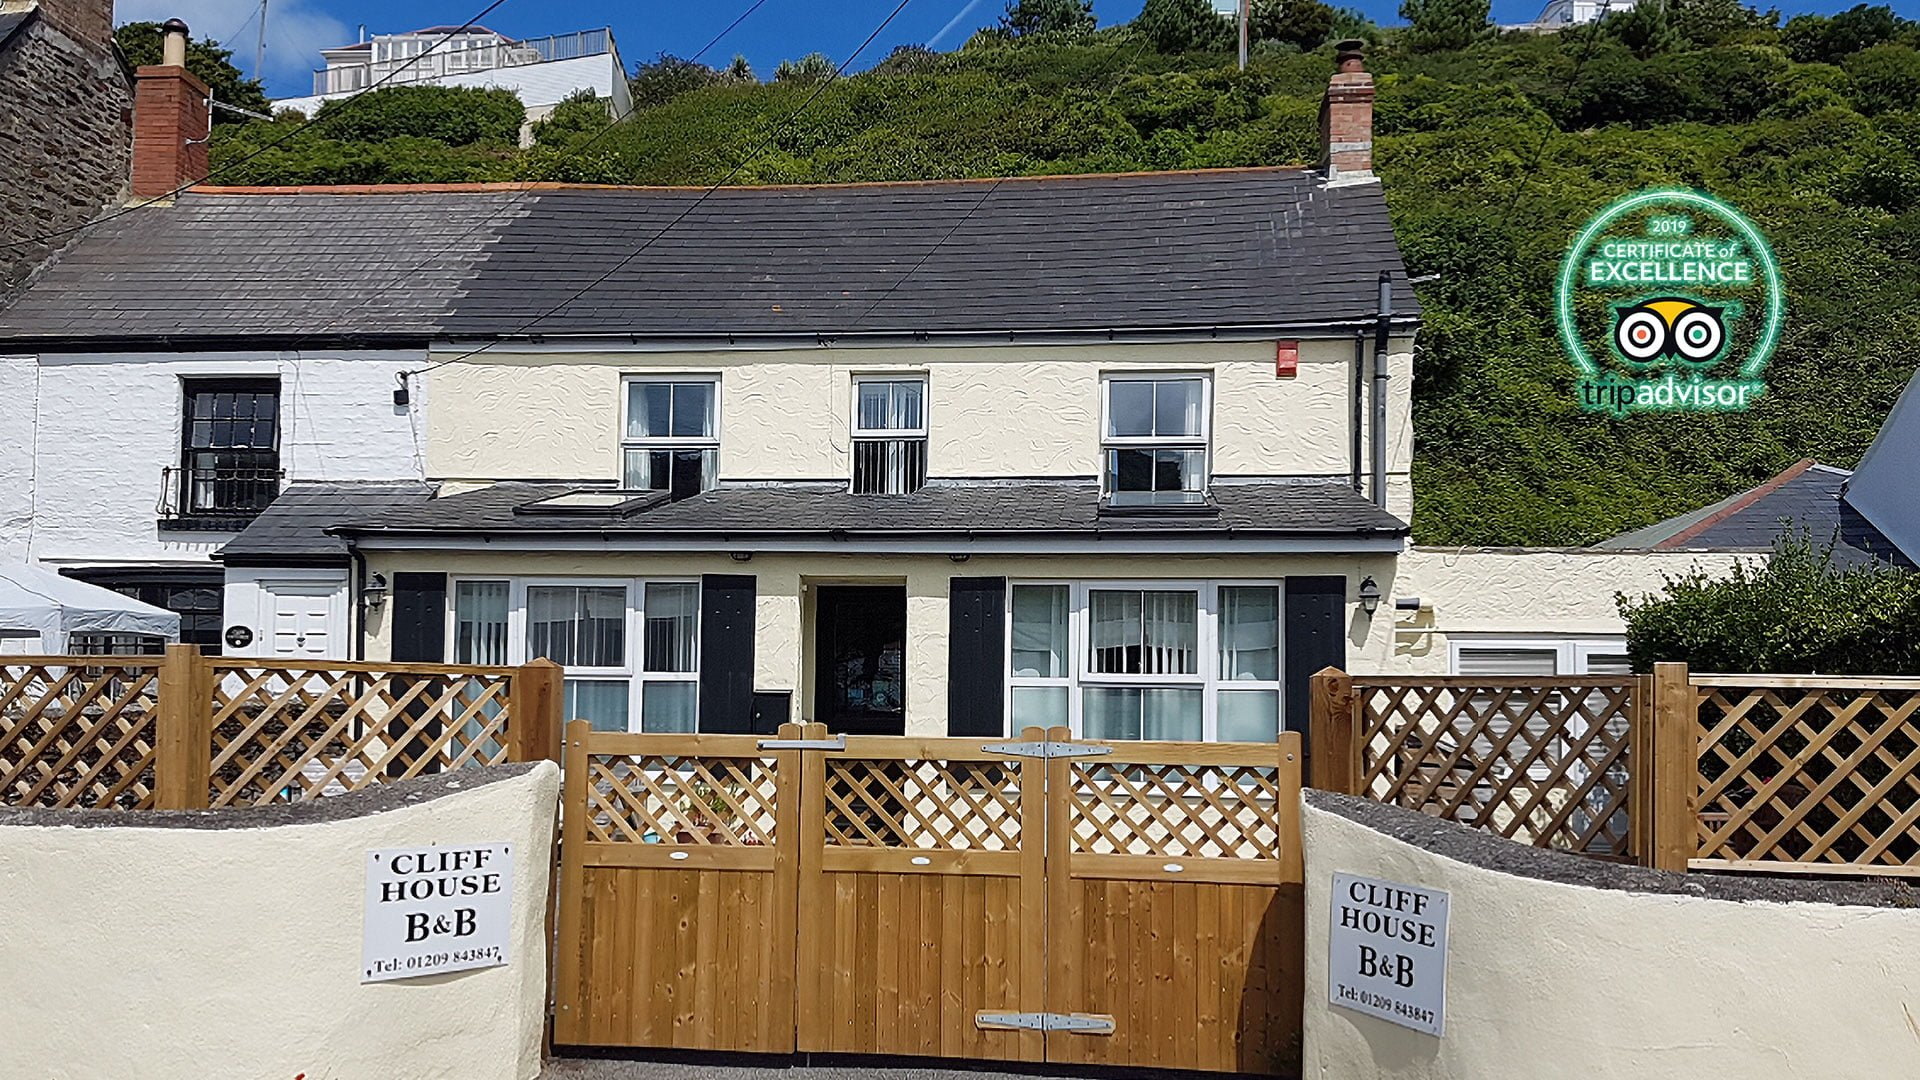 Cliff House B&B Portreath Cornwall